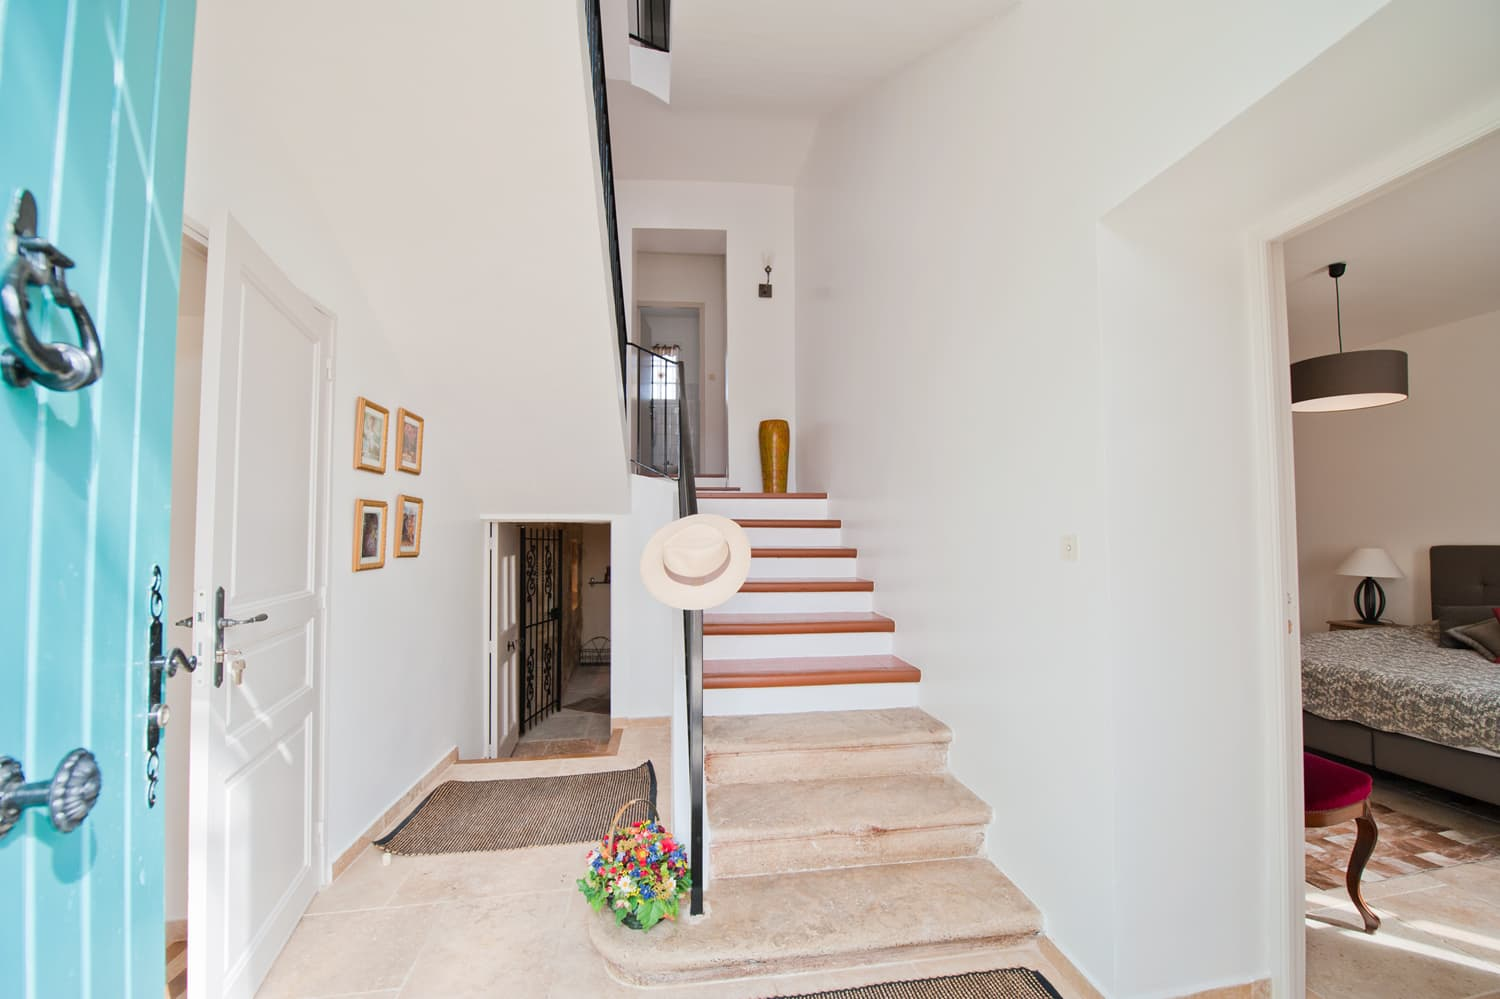 Staircase in Provence rental accommodation